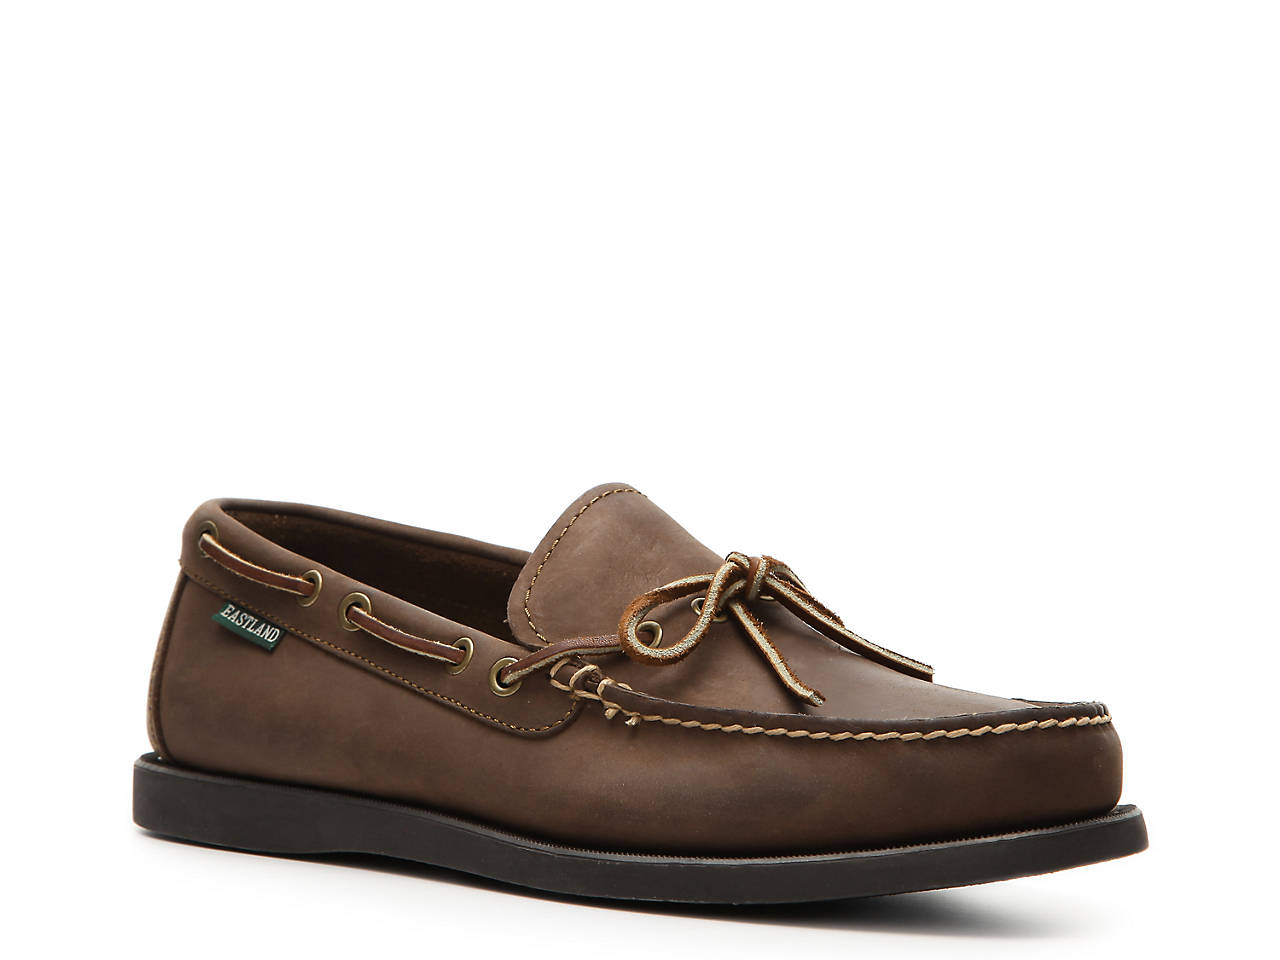 0a49413b7f8 Eastland Yarmouth Boat Shoe Men s Shoes